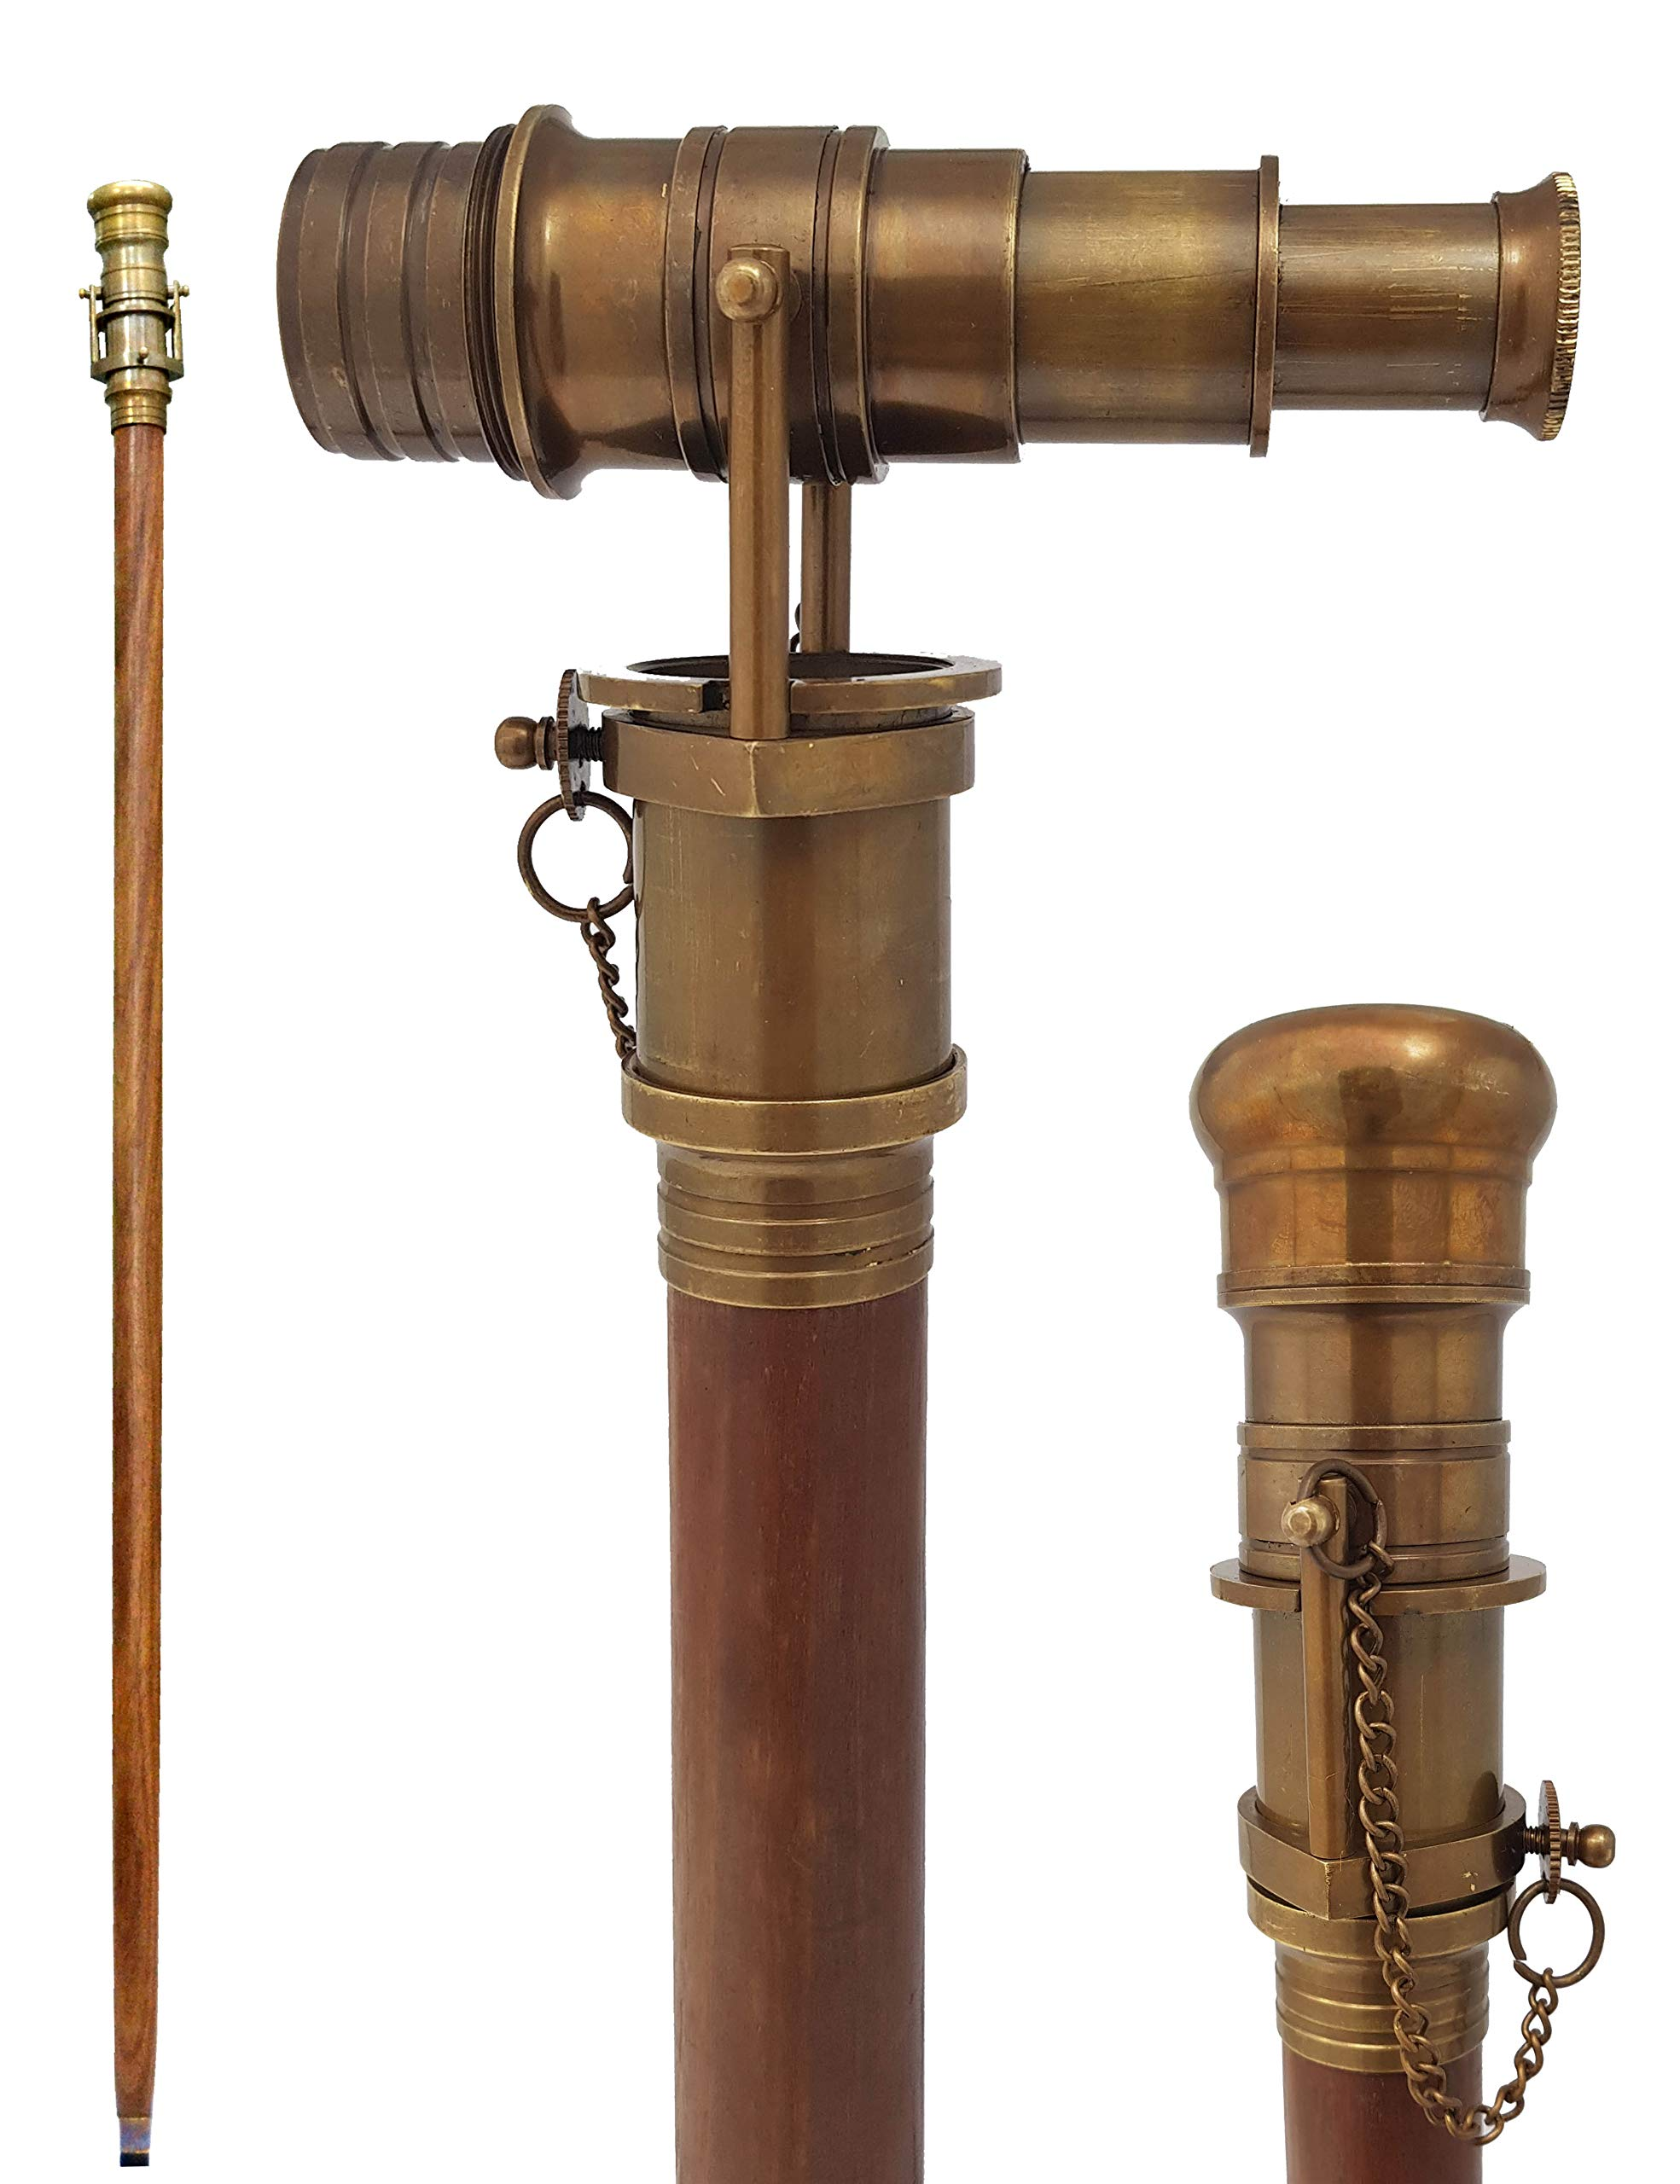 Brass Nautical Telescope Walking Stick Antique Finish Costume Wooden Cane Foldable Rosewood Stick Steampunk Style